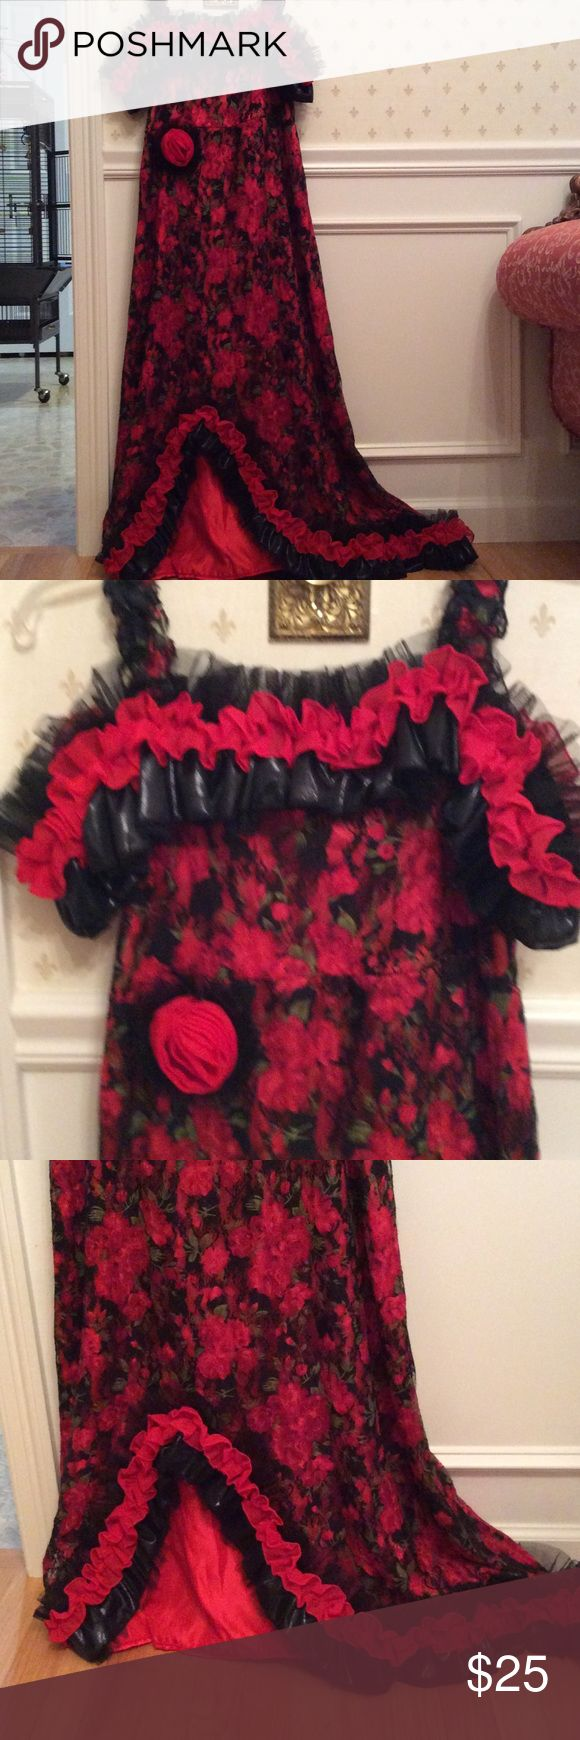 """Spanish Dancer Halloween Costume Dress Beautiful girls size XL Spanish Dancer dress.  Will fit womens small. Well made and great quality.  Fun fun fun. Length 45"""" from top to bottom. Can be worn off the shoulder or with straps Other"""